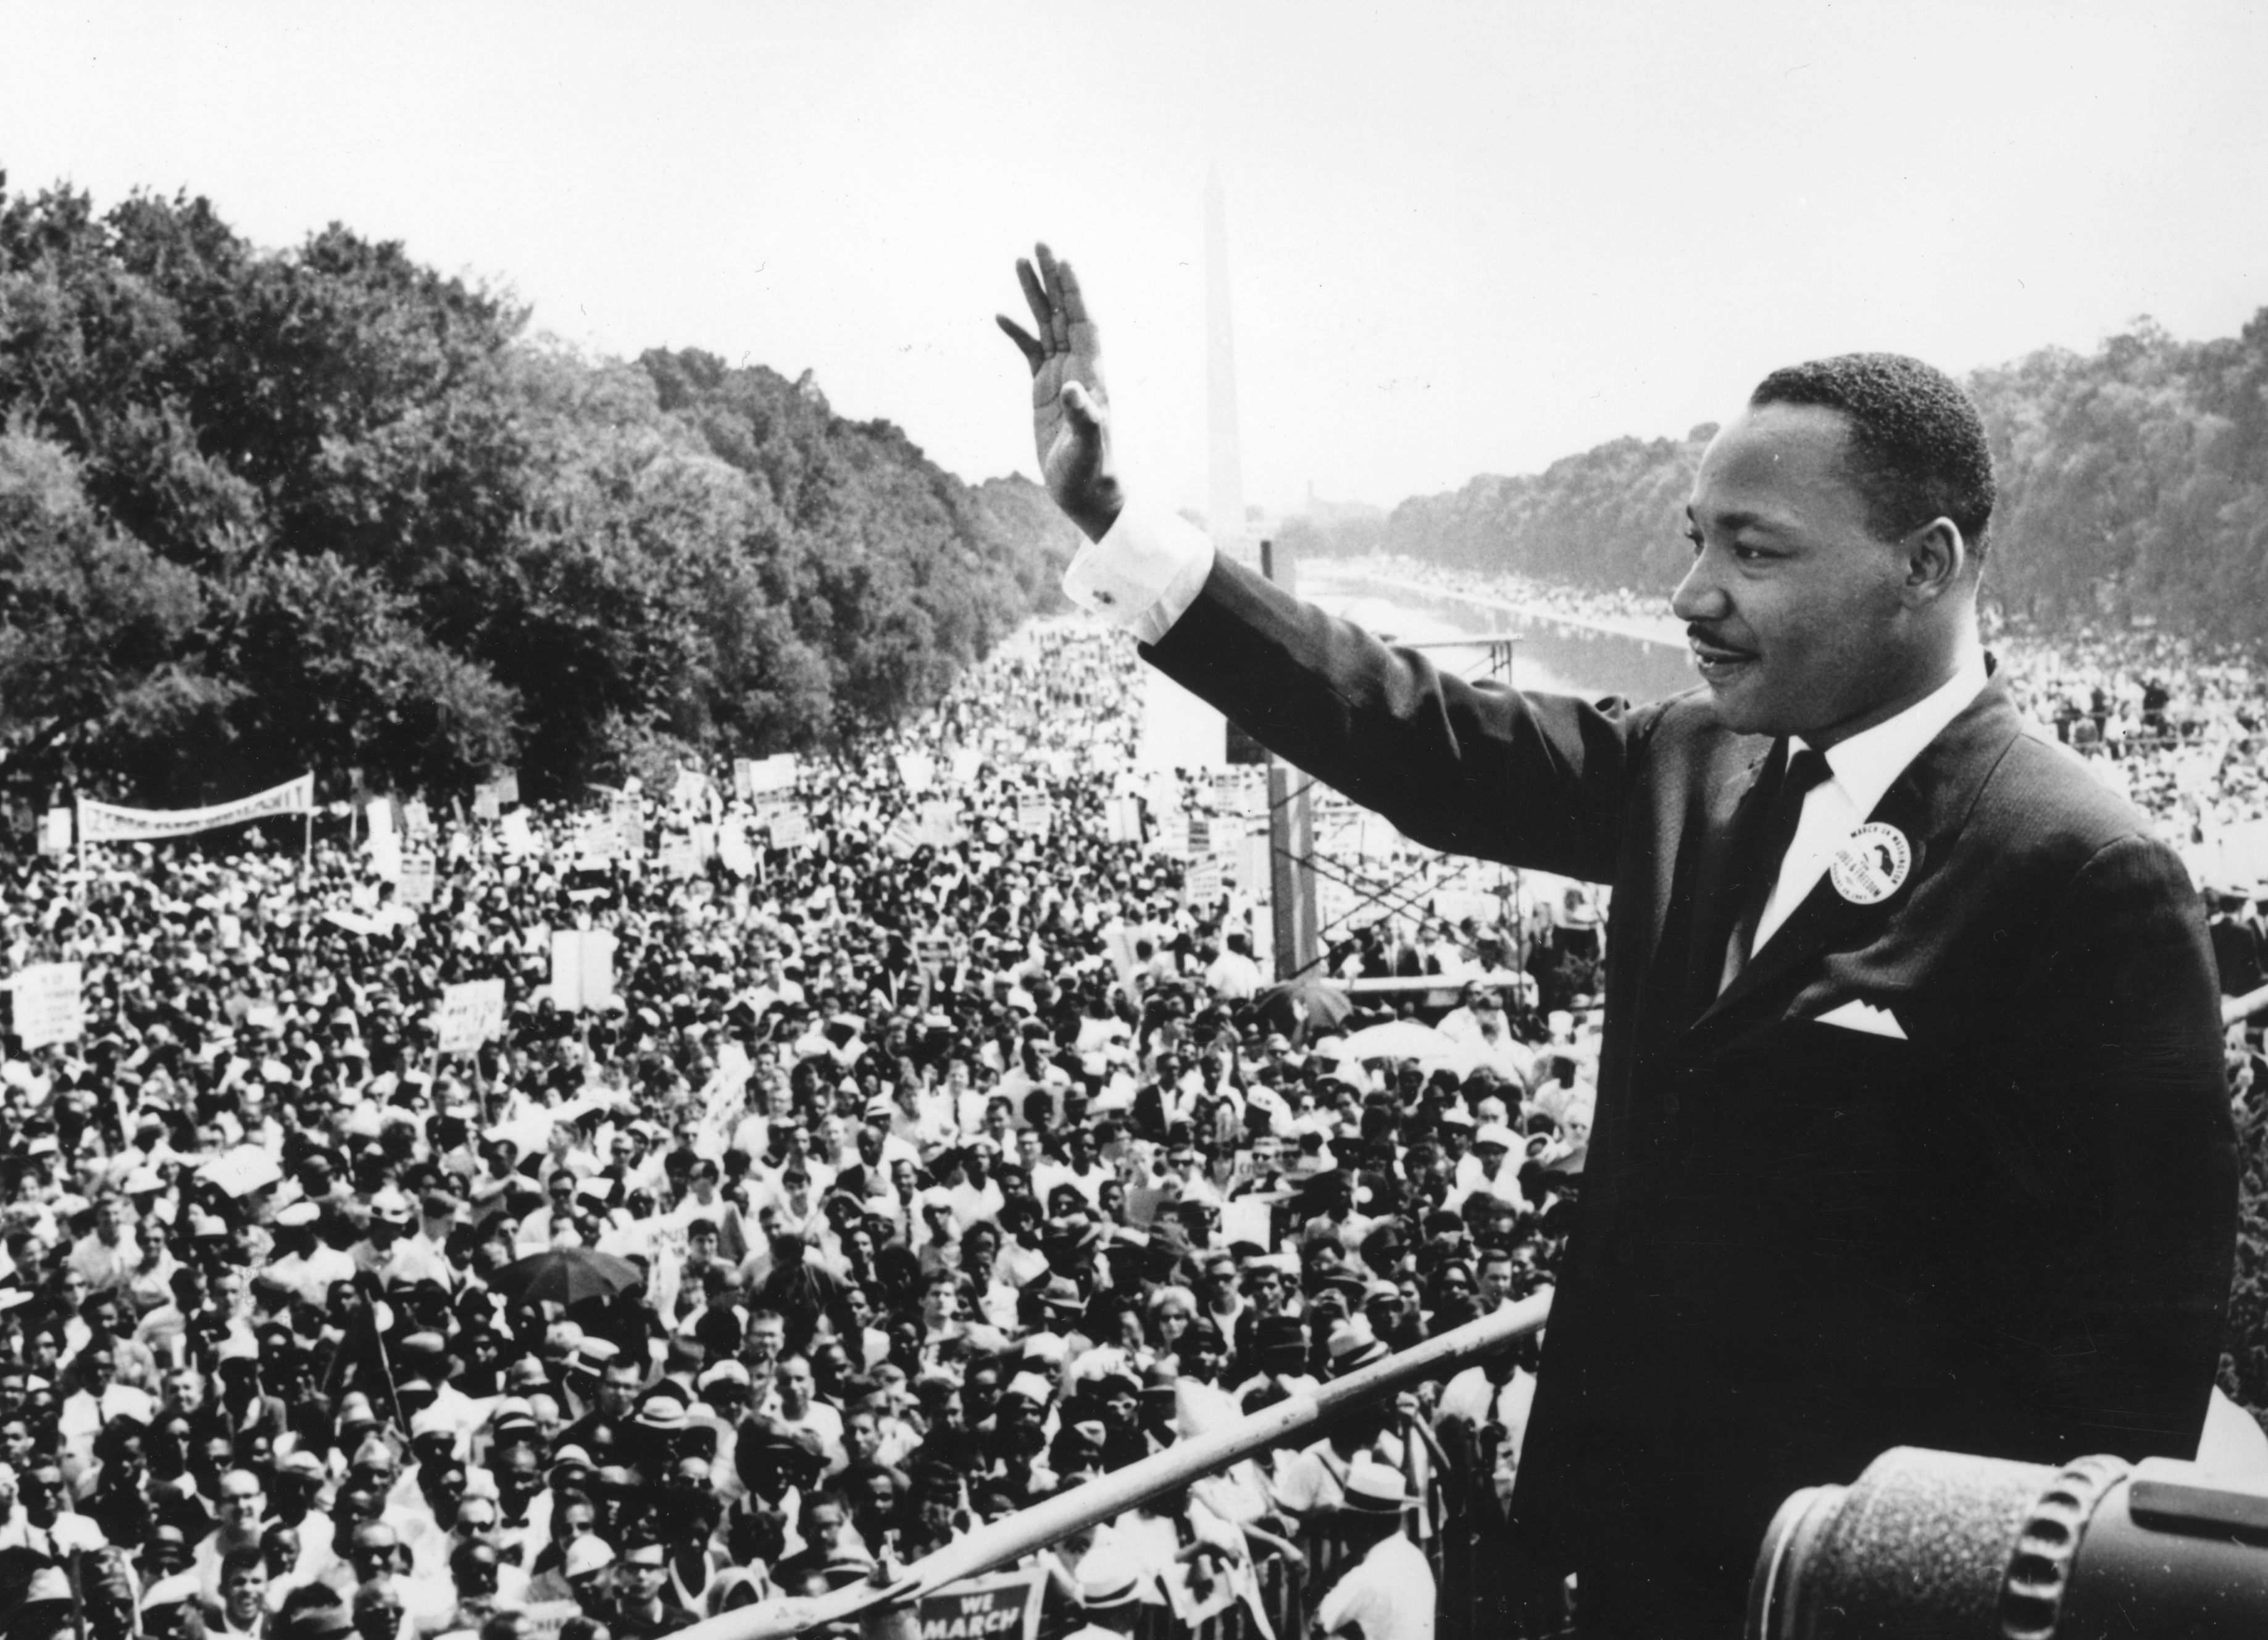 Martin Luther King Jr. Day 2021: 11 of King's Most Moving and Memorable Quotes